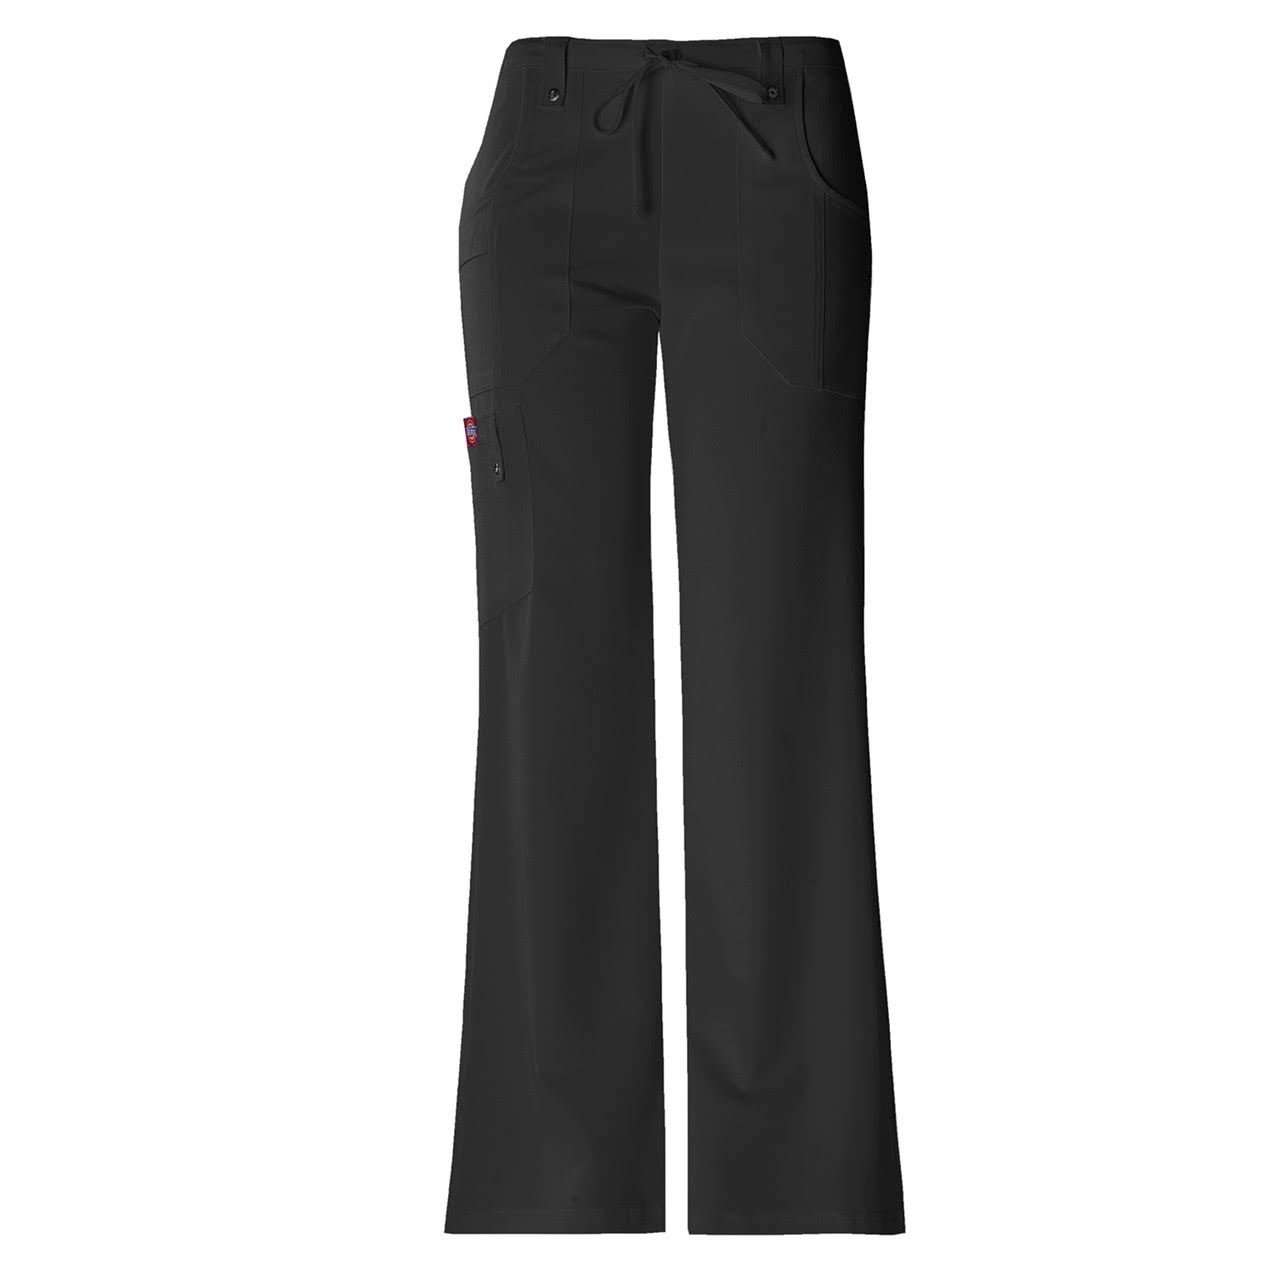 Dickies Women's Xtreme Stretch Tall Drawstring Scrub Pant - XL - Black